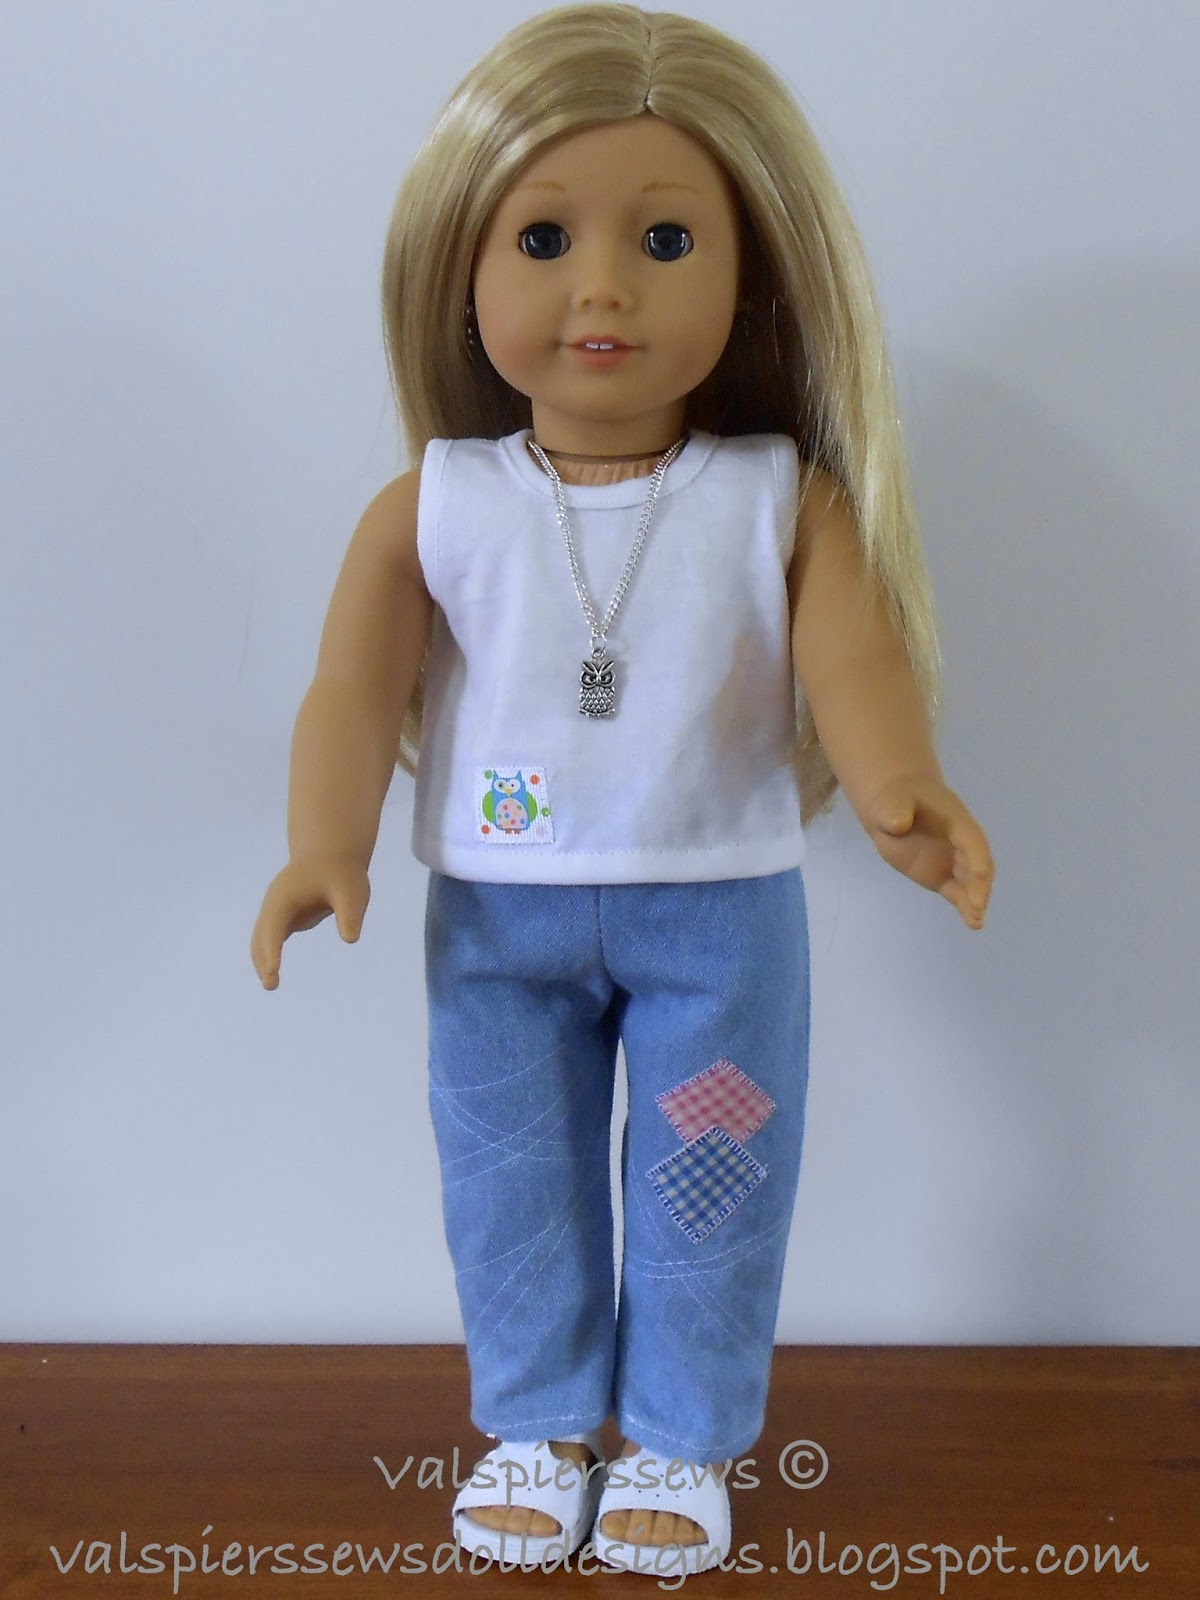 Doll Clothes Patterns by Valspierssews: Updated File for Doll ...